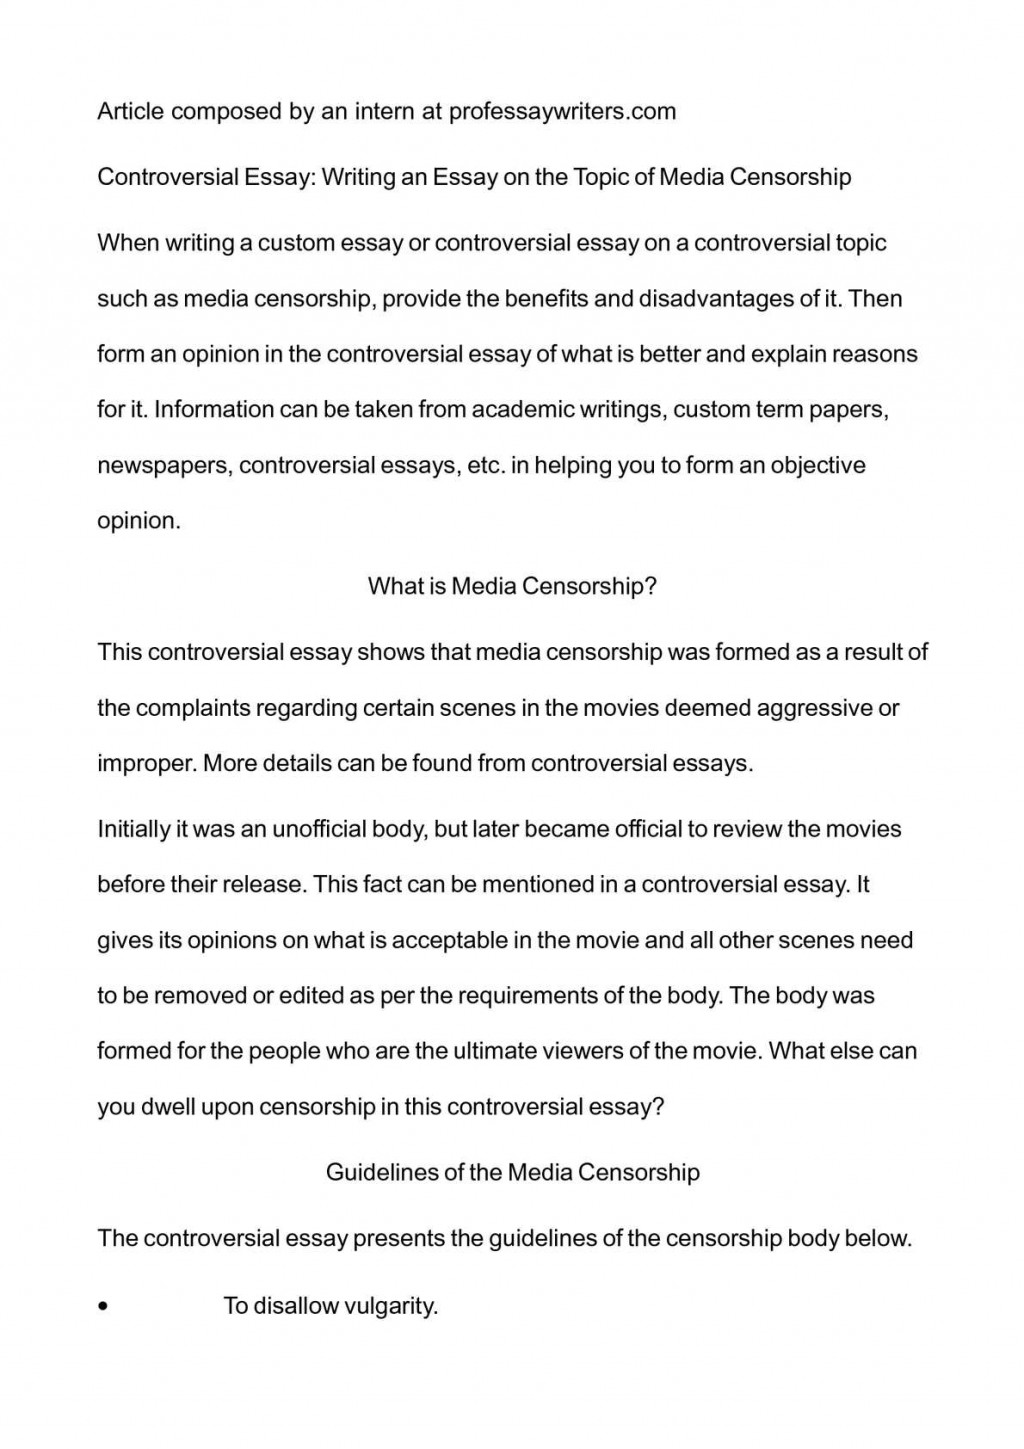 008 Essay Example Controversial Best Topics For High School Students Outline Format On Immigration Large